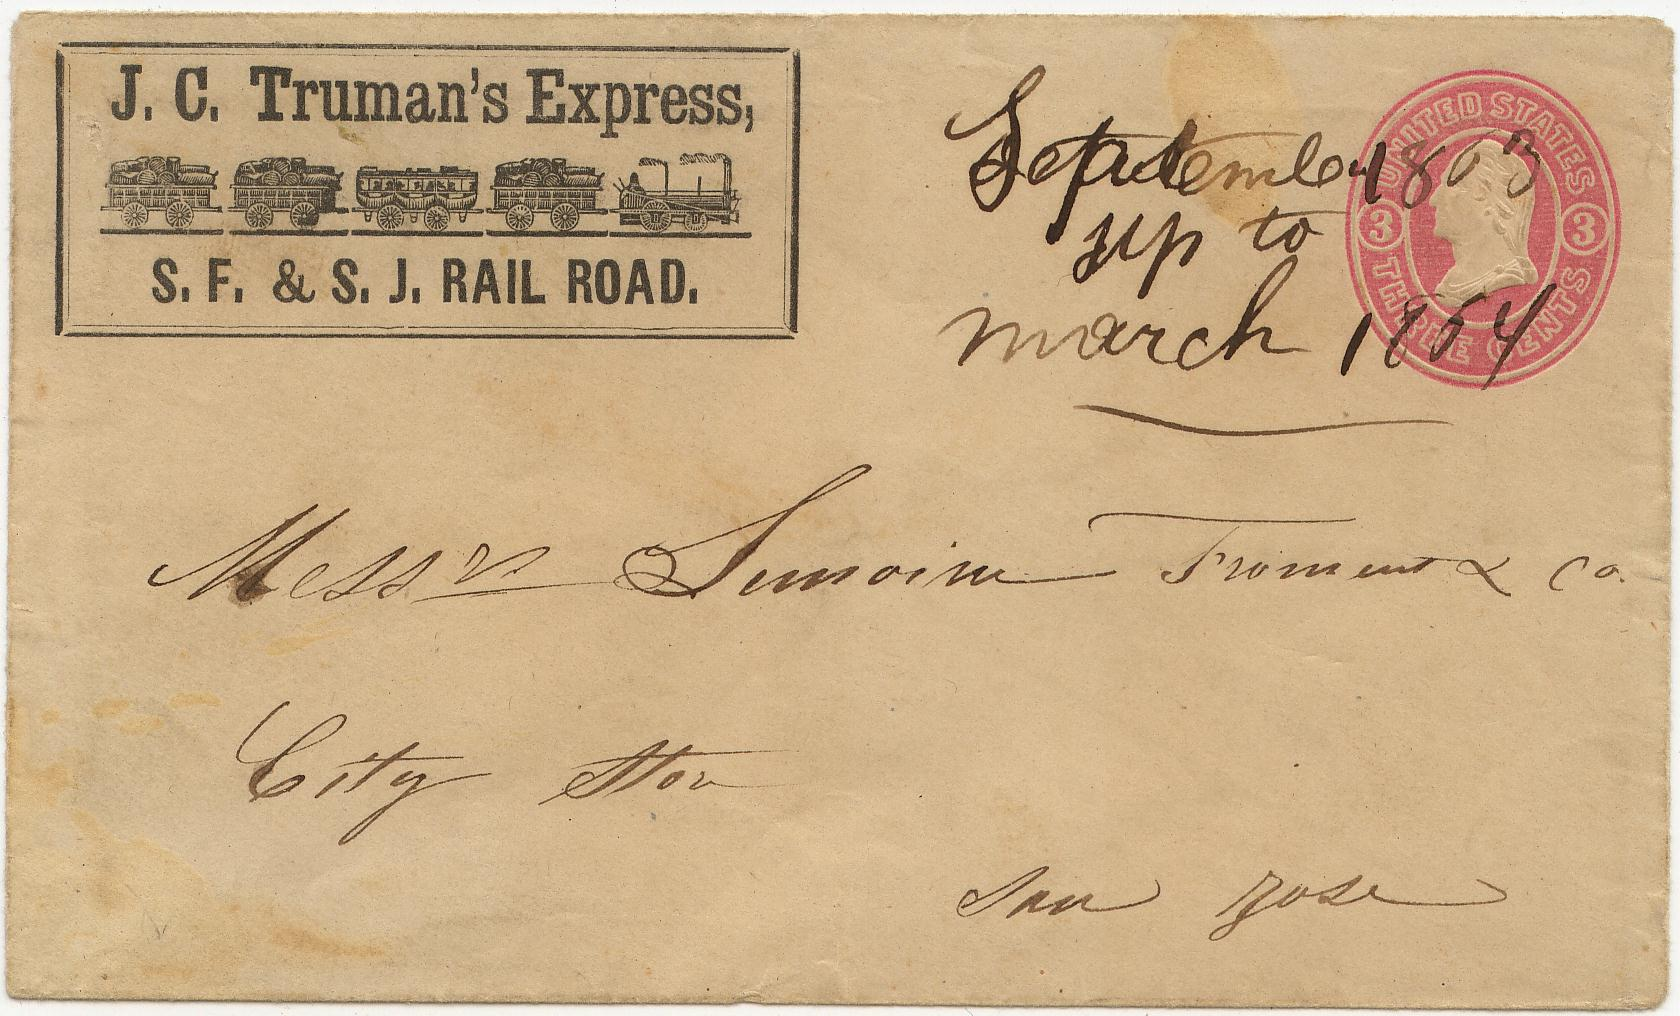 Truman JC Frank Train Right Mar1864 0903 Mader